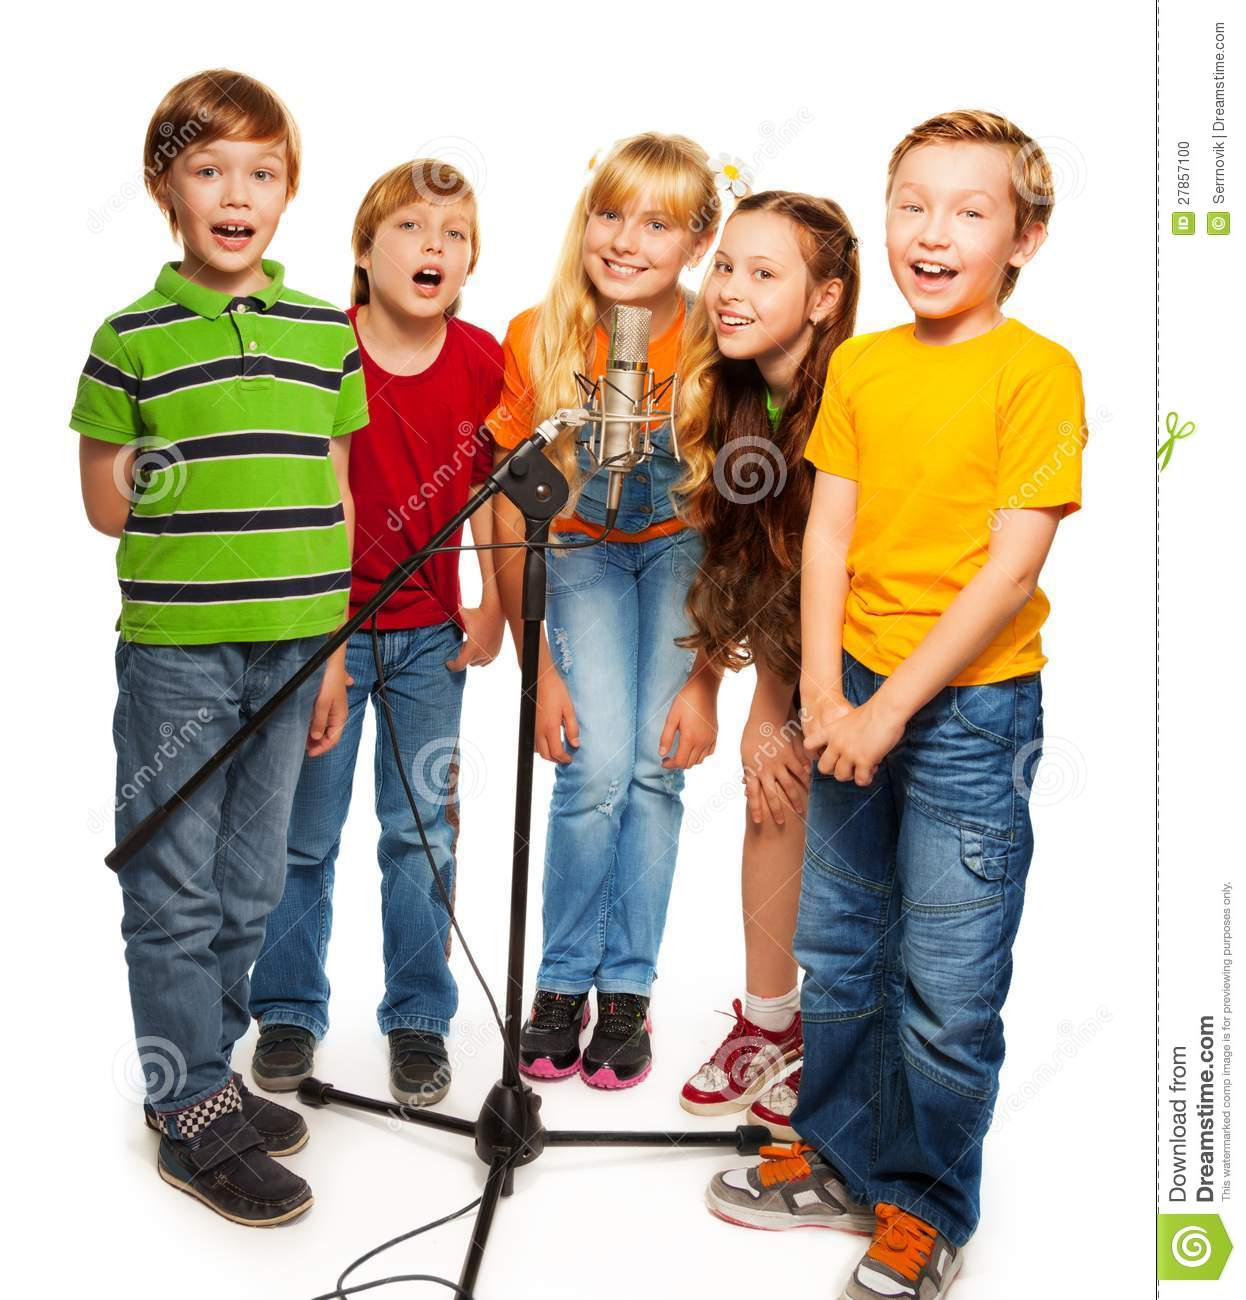 Five Star Singing Group Performance http://www.dreamstime.com/stock-photo-group-kids-singing-to-microphone-image27857100